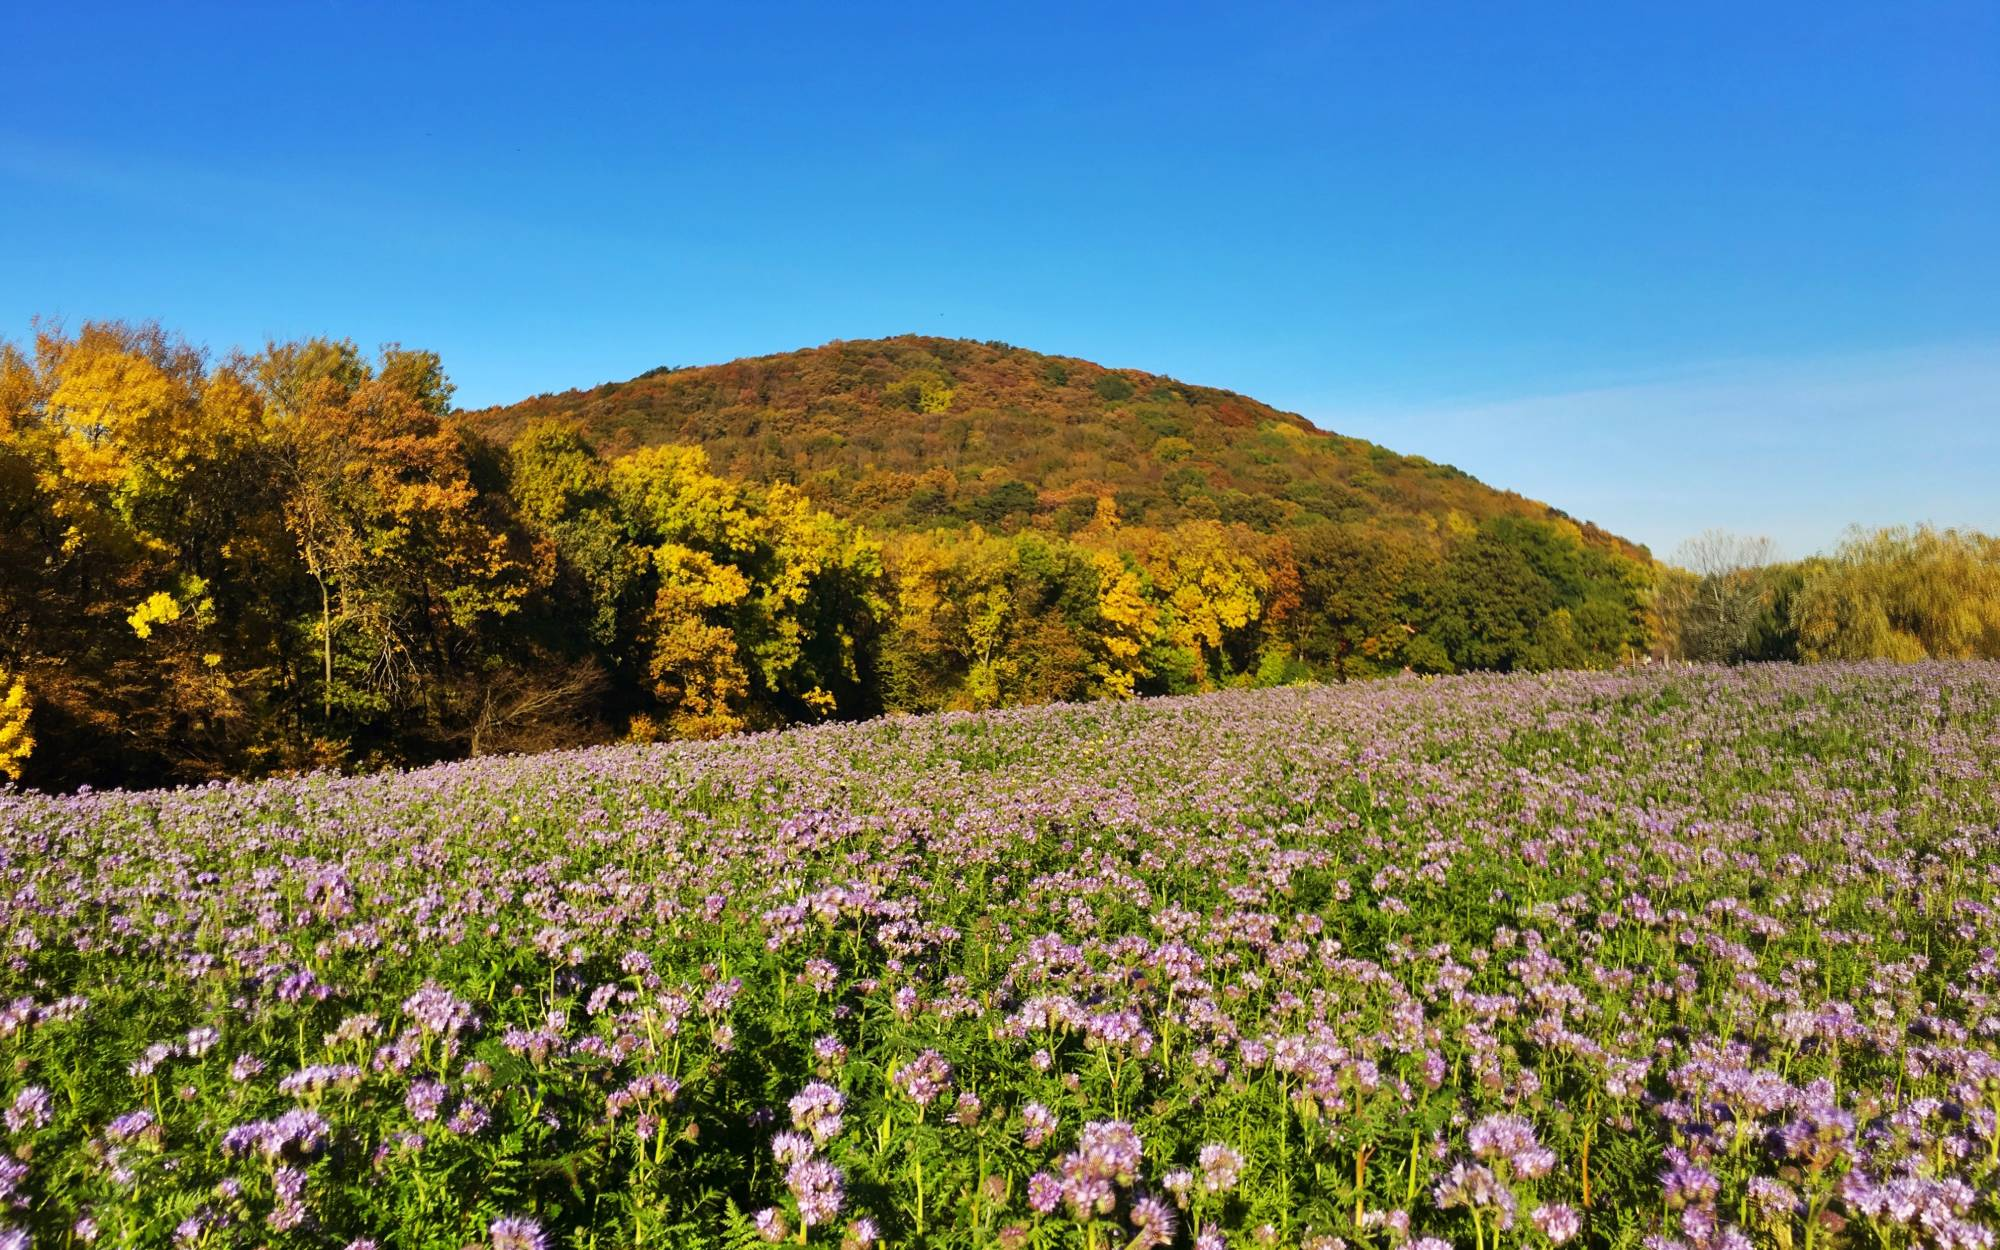 Wienerwald - The 7 Best Places To Experience The Vienna Woods